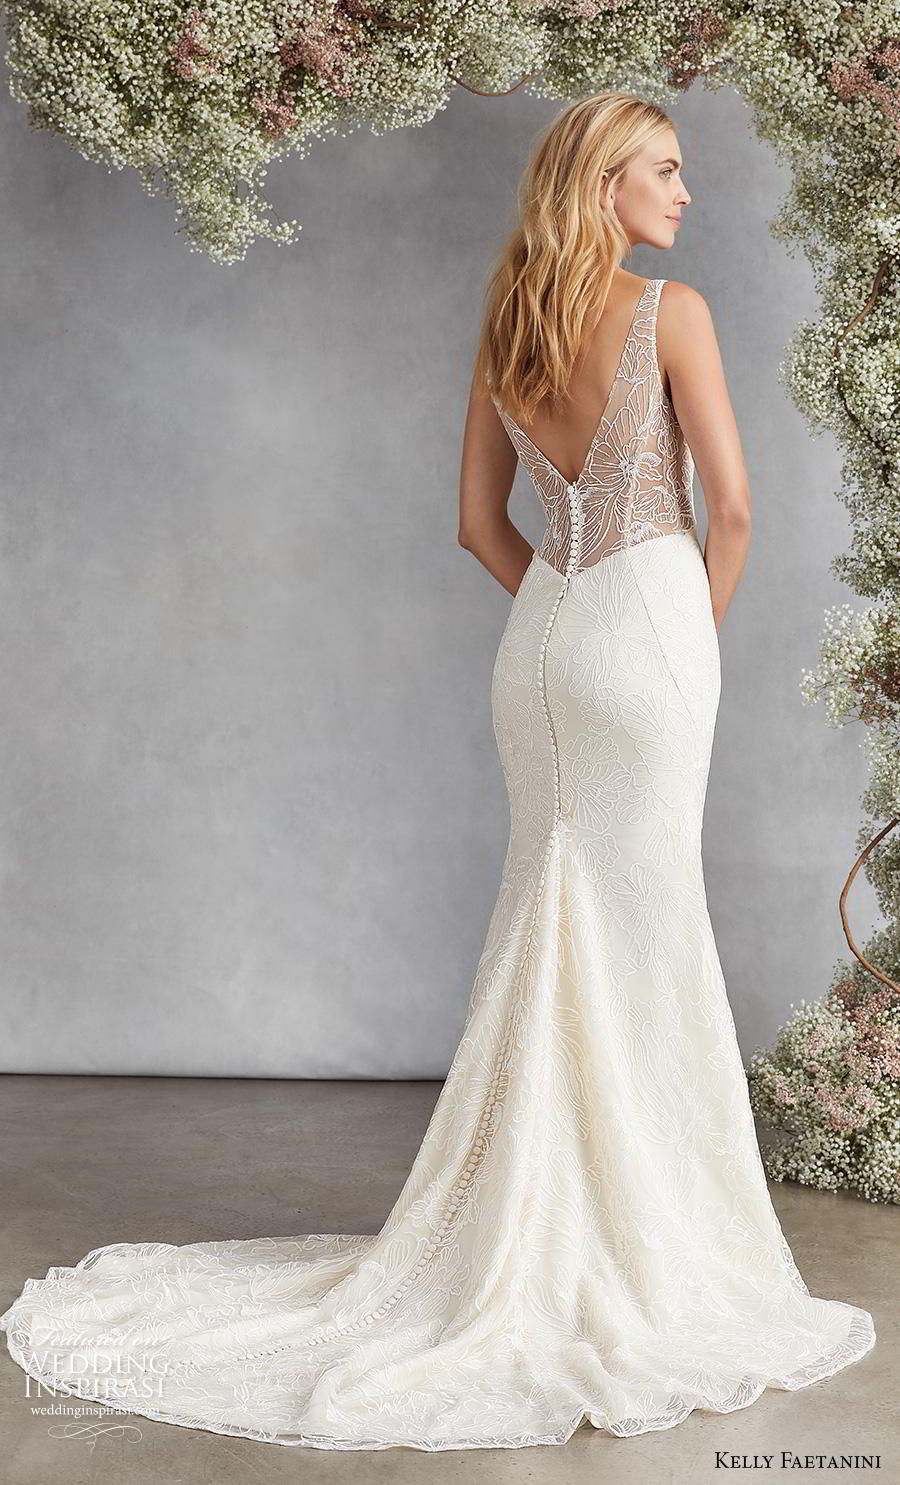 kelly faetanini fall 2020 bridal sleeveless v neck light embellishment elegant classic fit and flare wedding dress v back medium train (16) bv